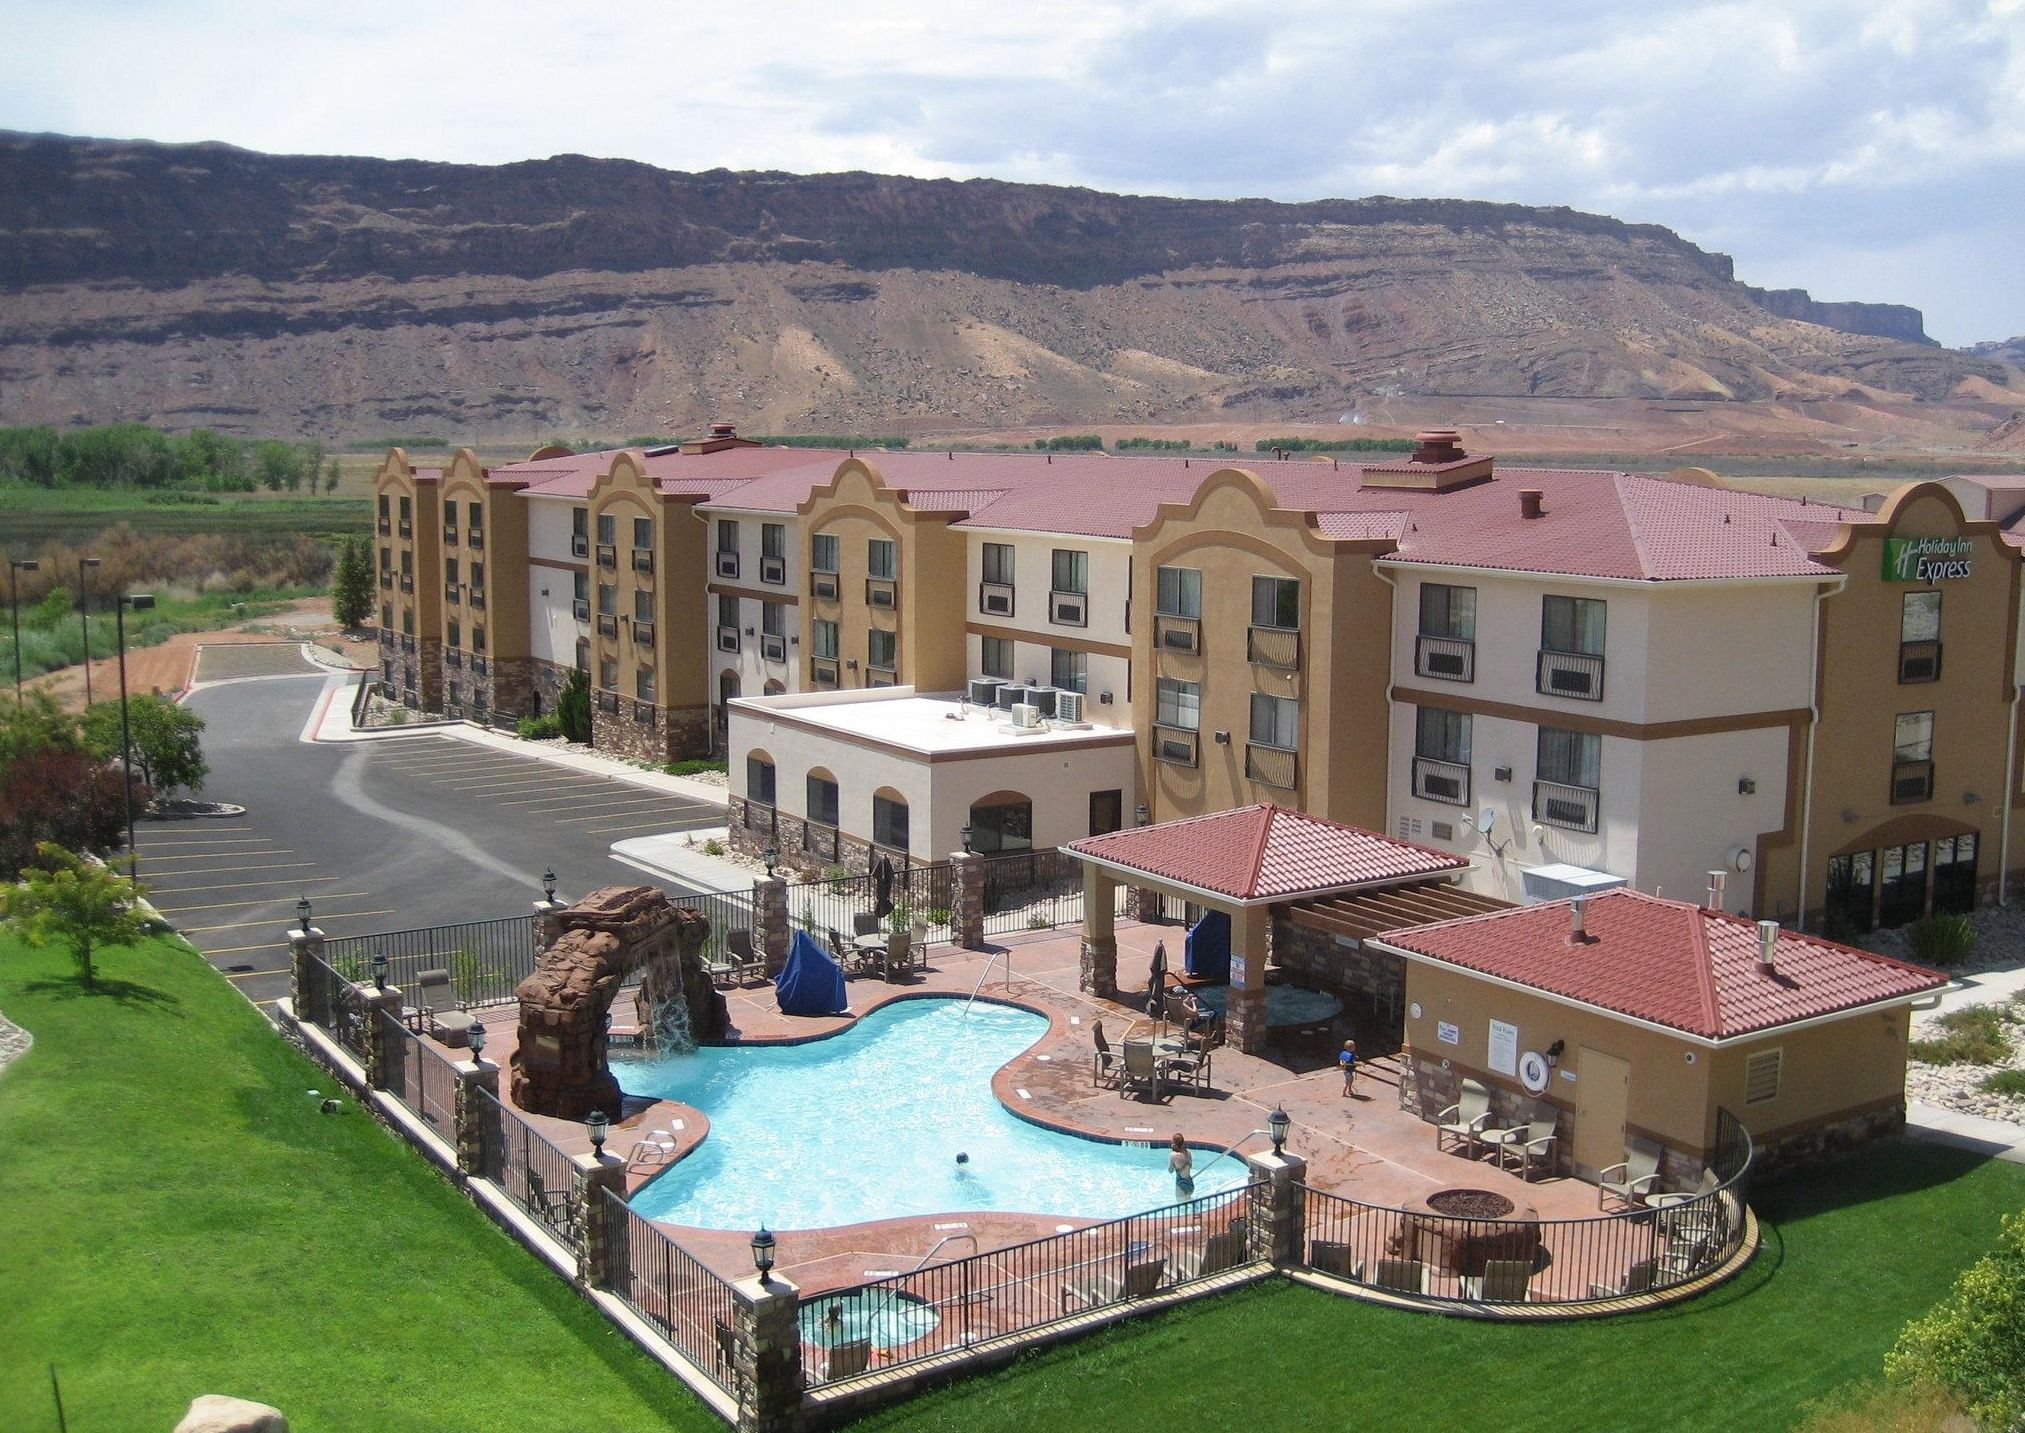 The Most Luxurious Nature Getaways In The US Moab hotels